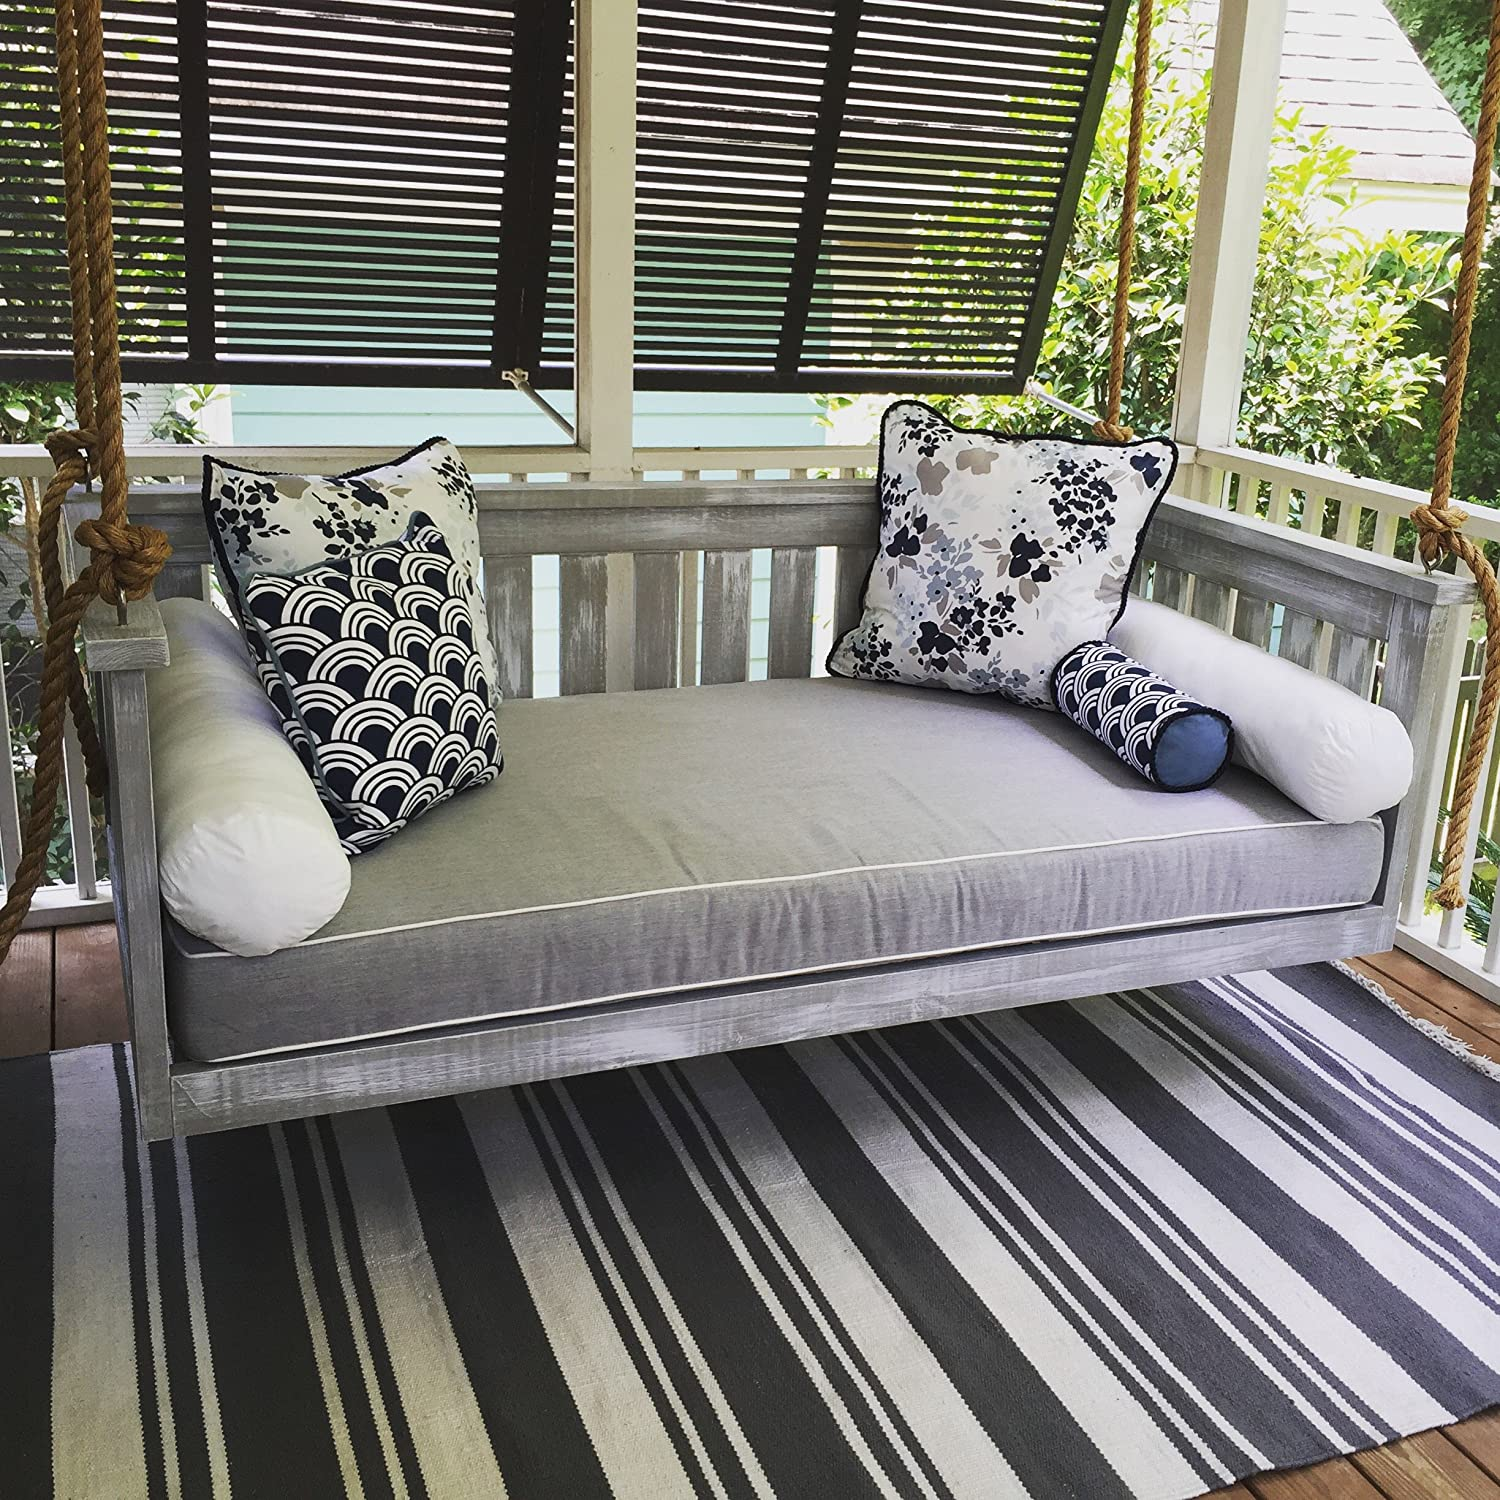 Amazoncom Porch Swing The Windermere Swing Bed